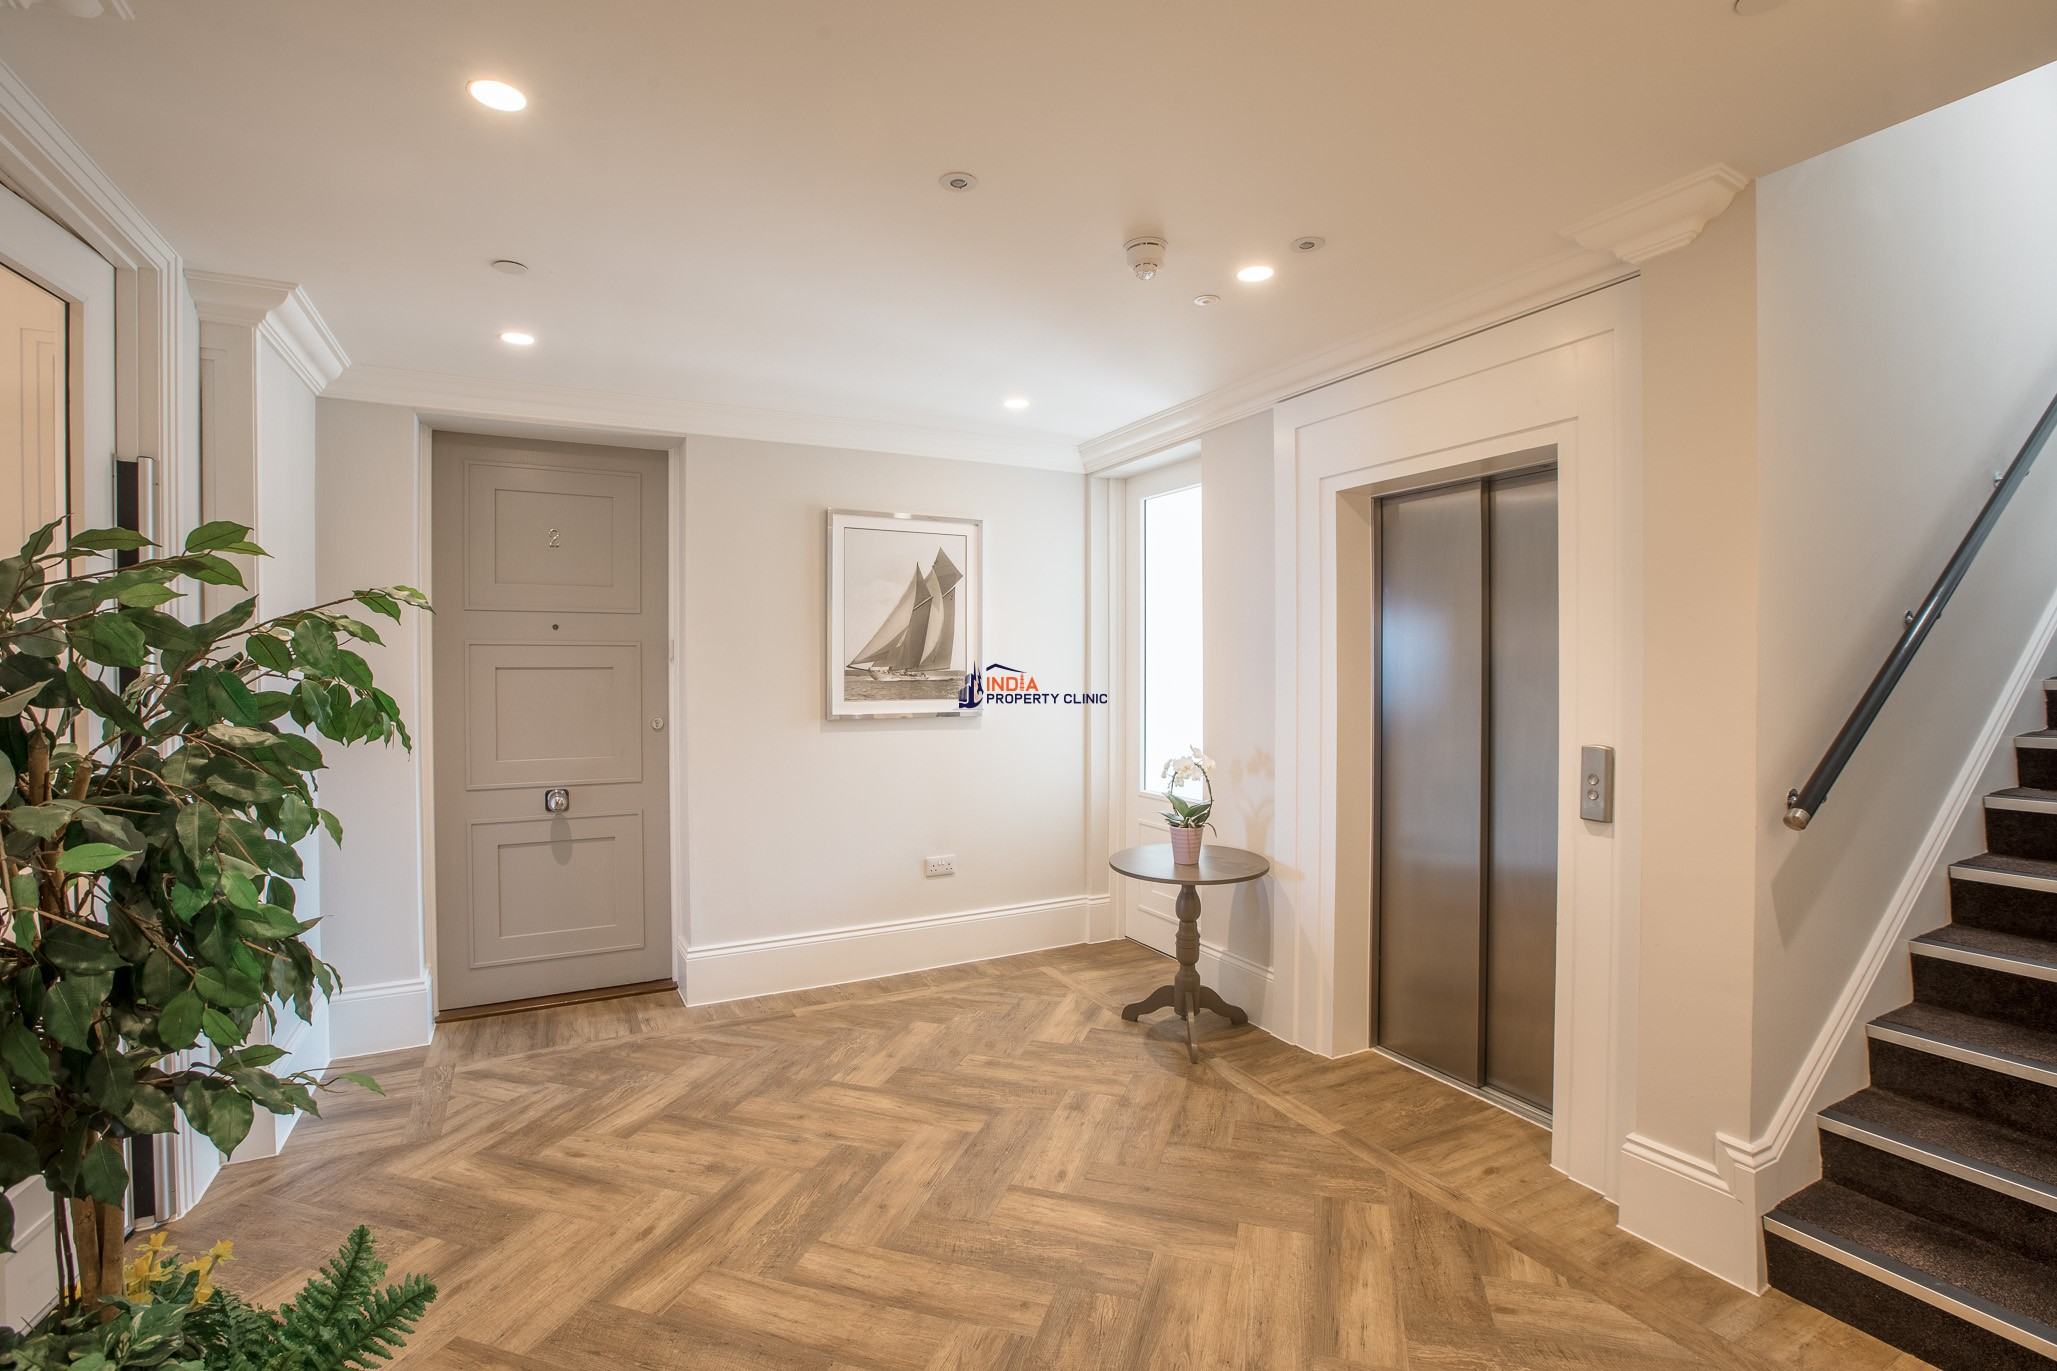 Flat for sale in Port Erin